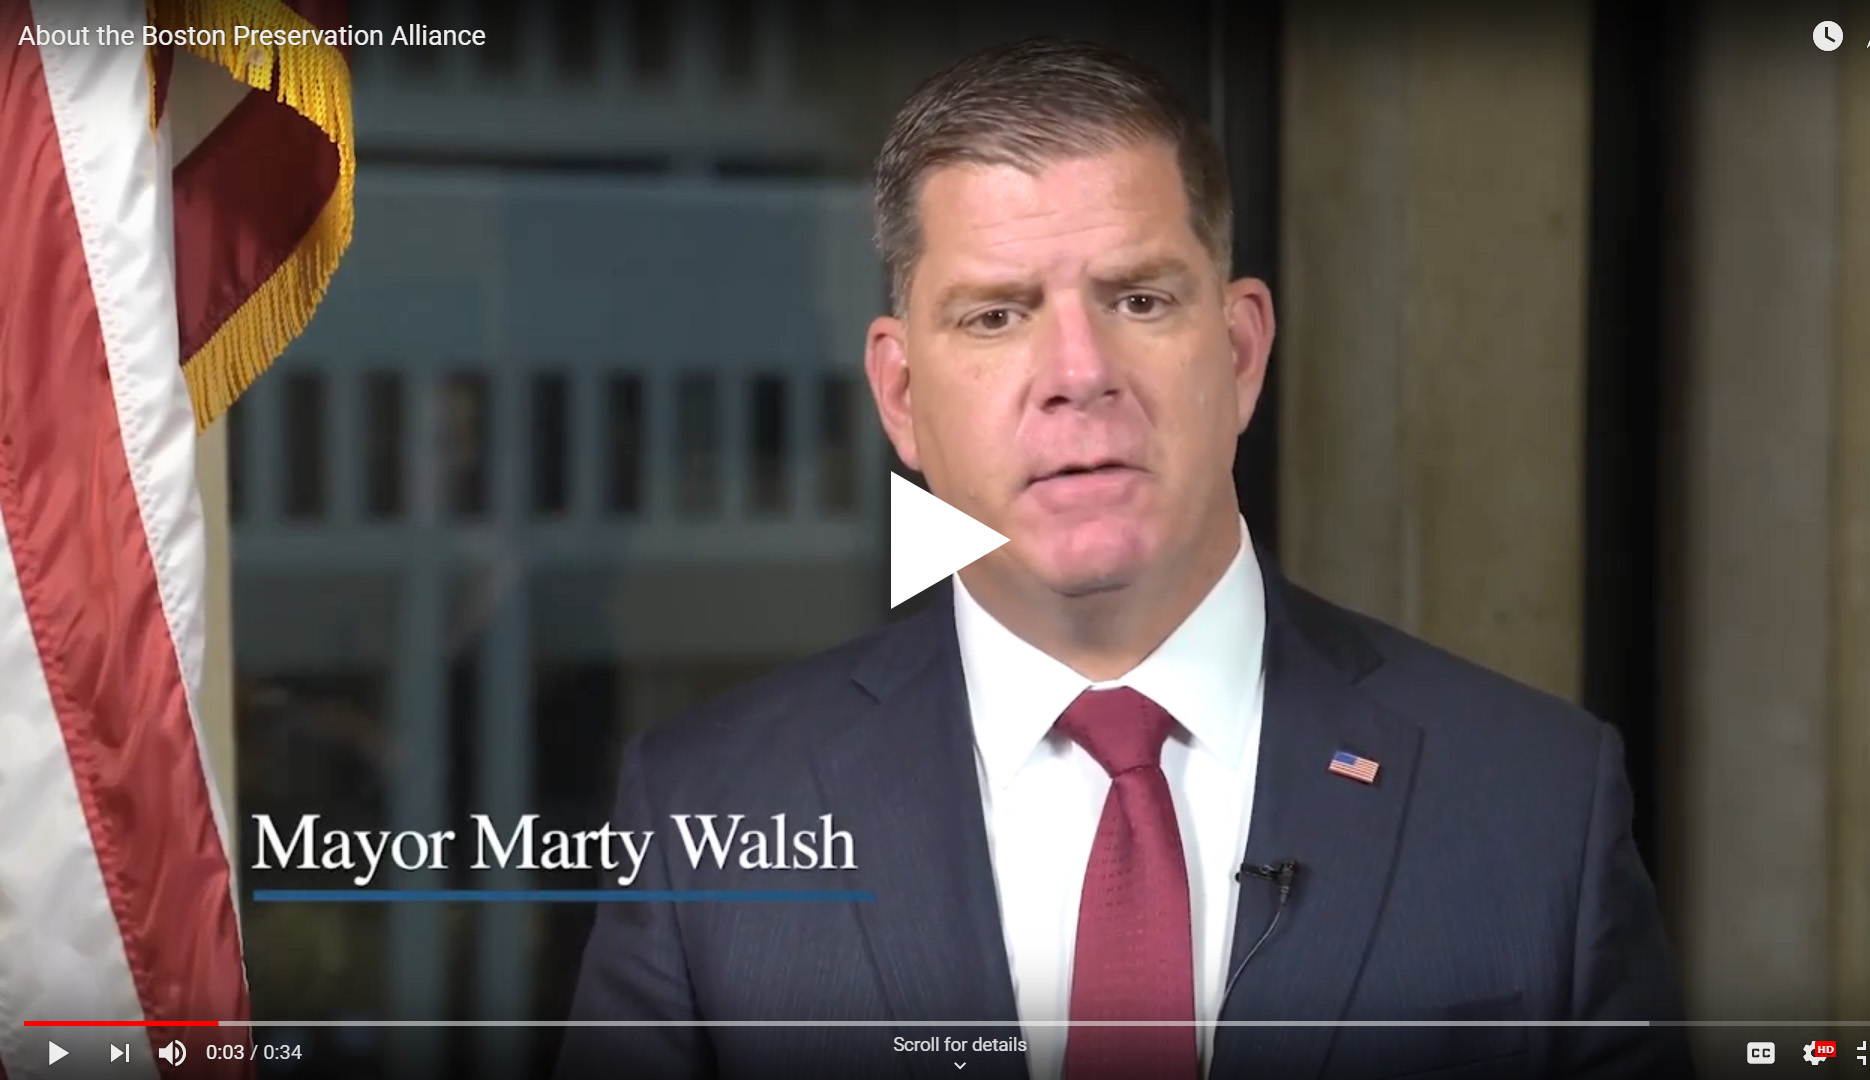 Mayor Walsh Talks Preservation